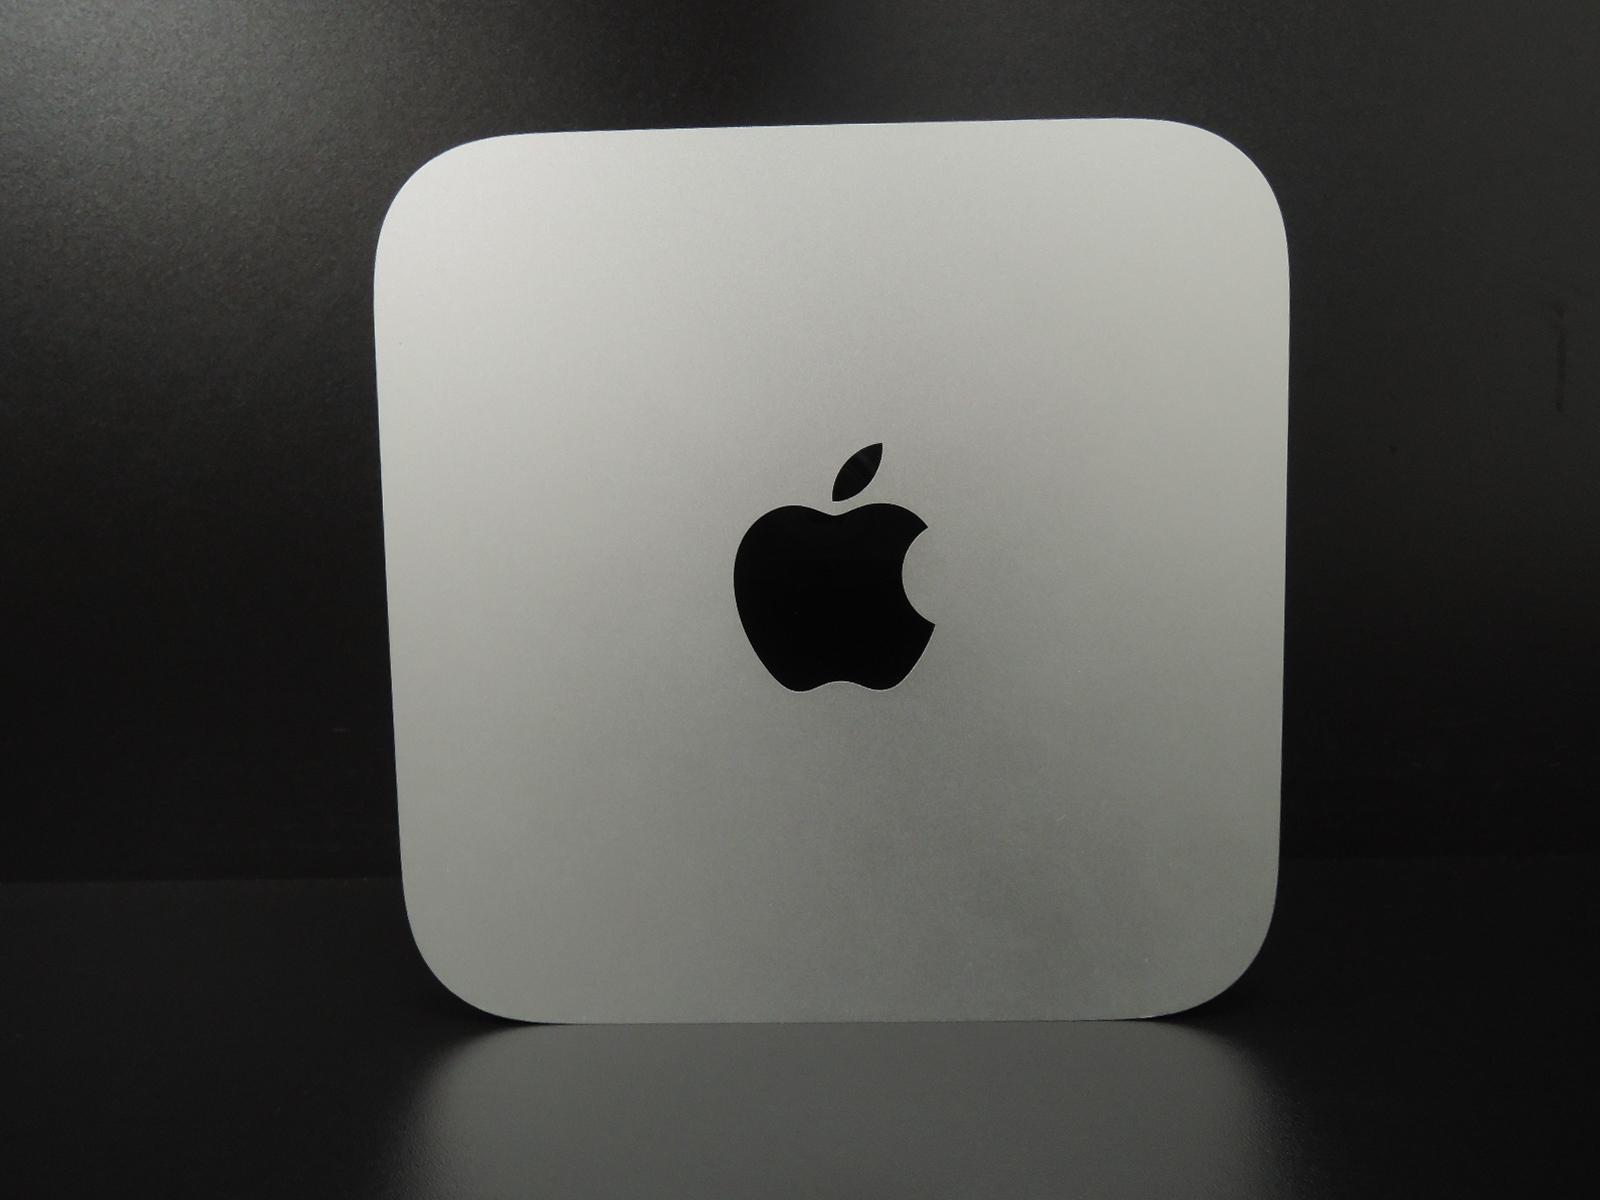 Apple Mac Mini i7 2.3Ghz/8GB RAM/1TB HDD + 1TB HDD